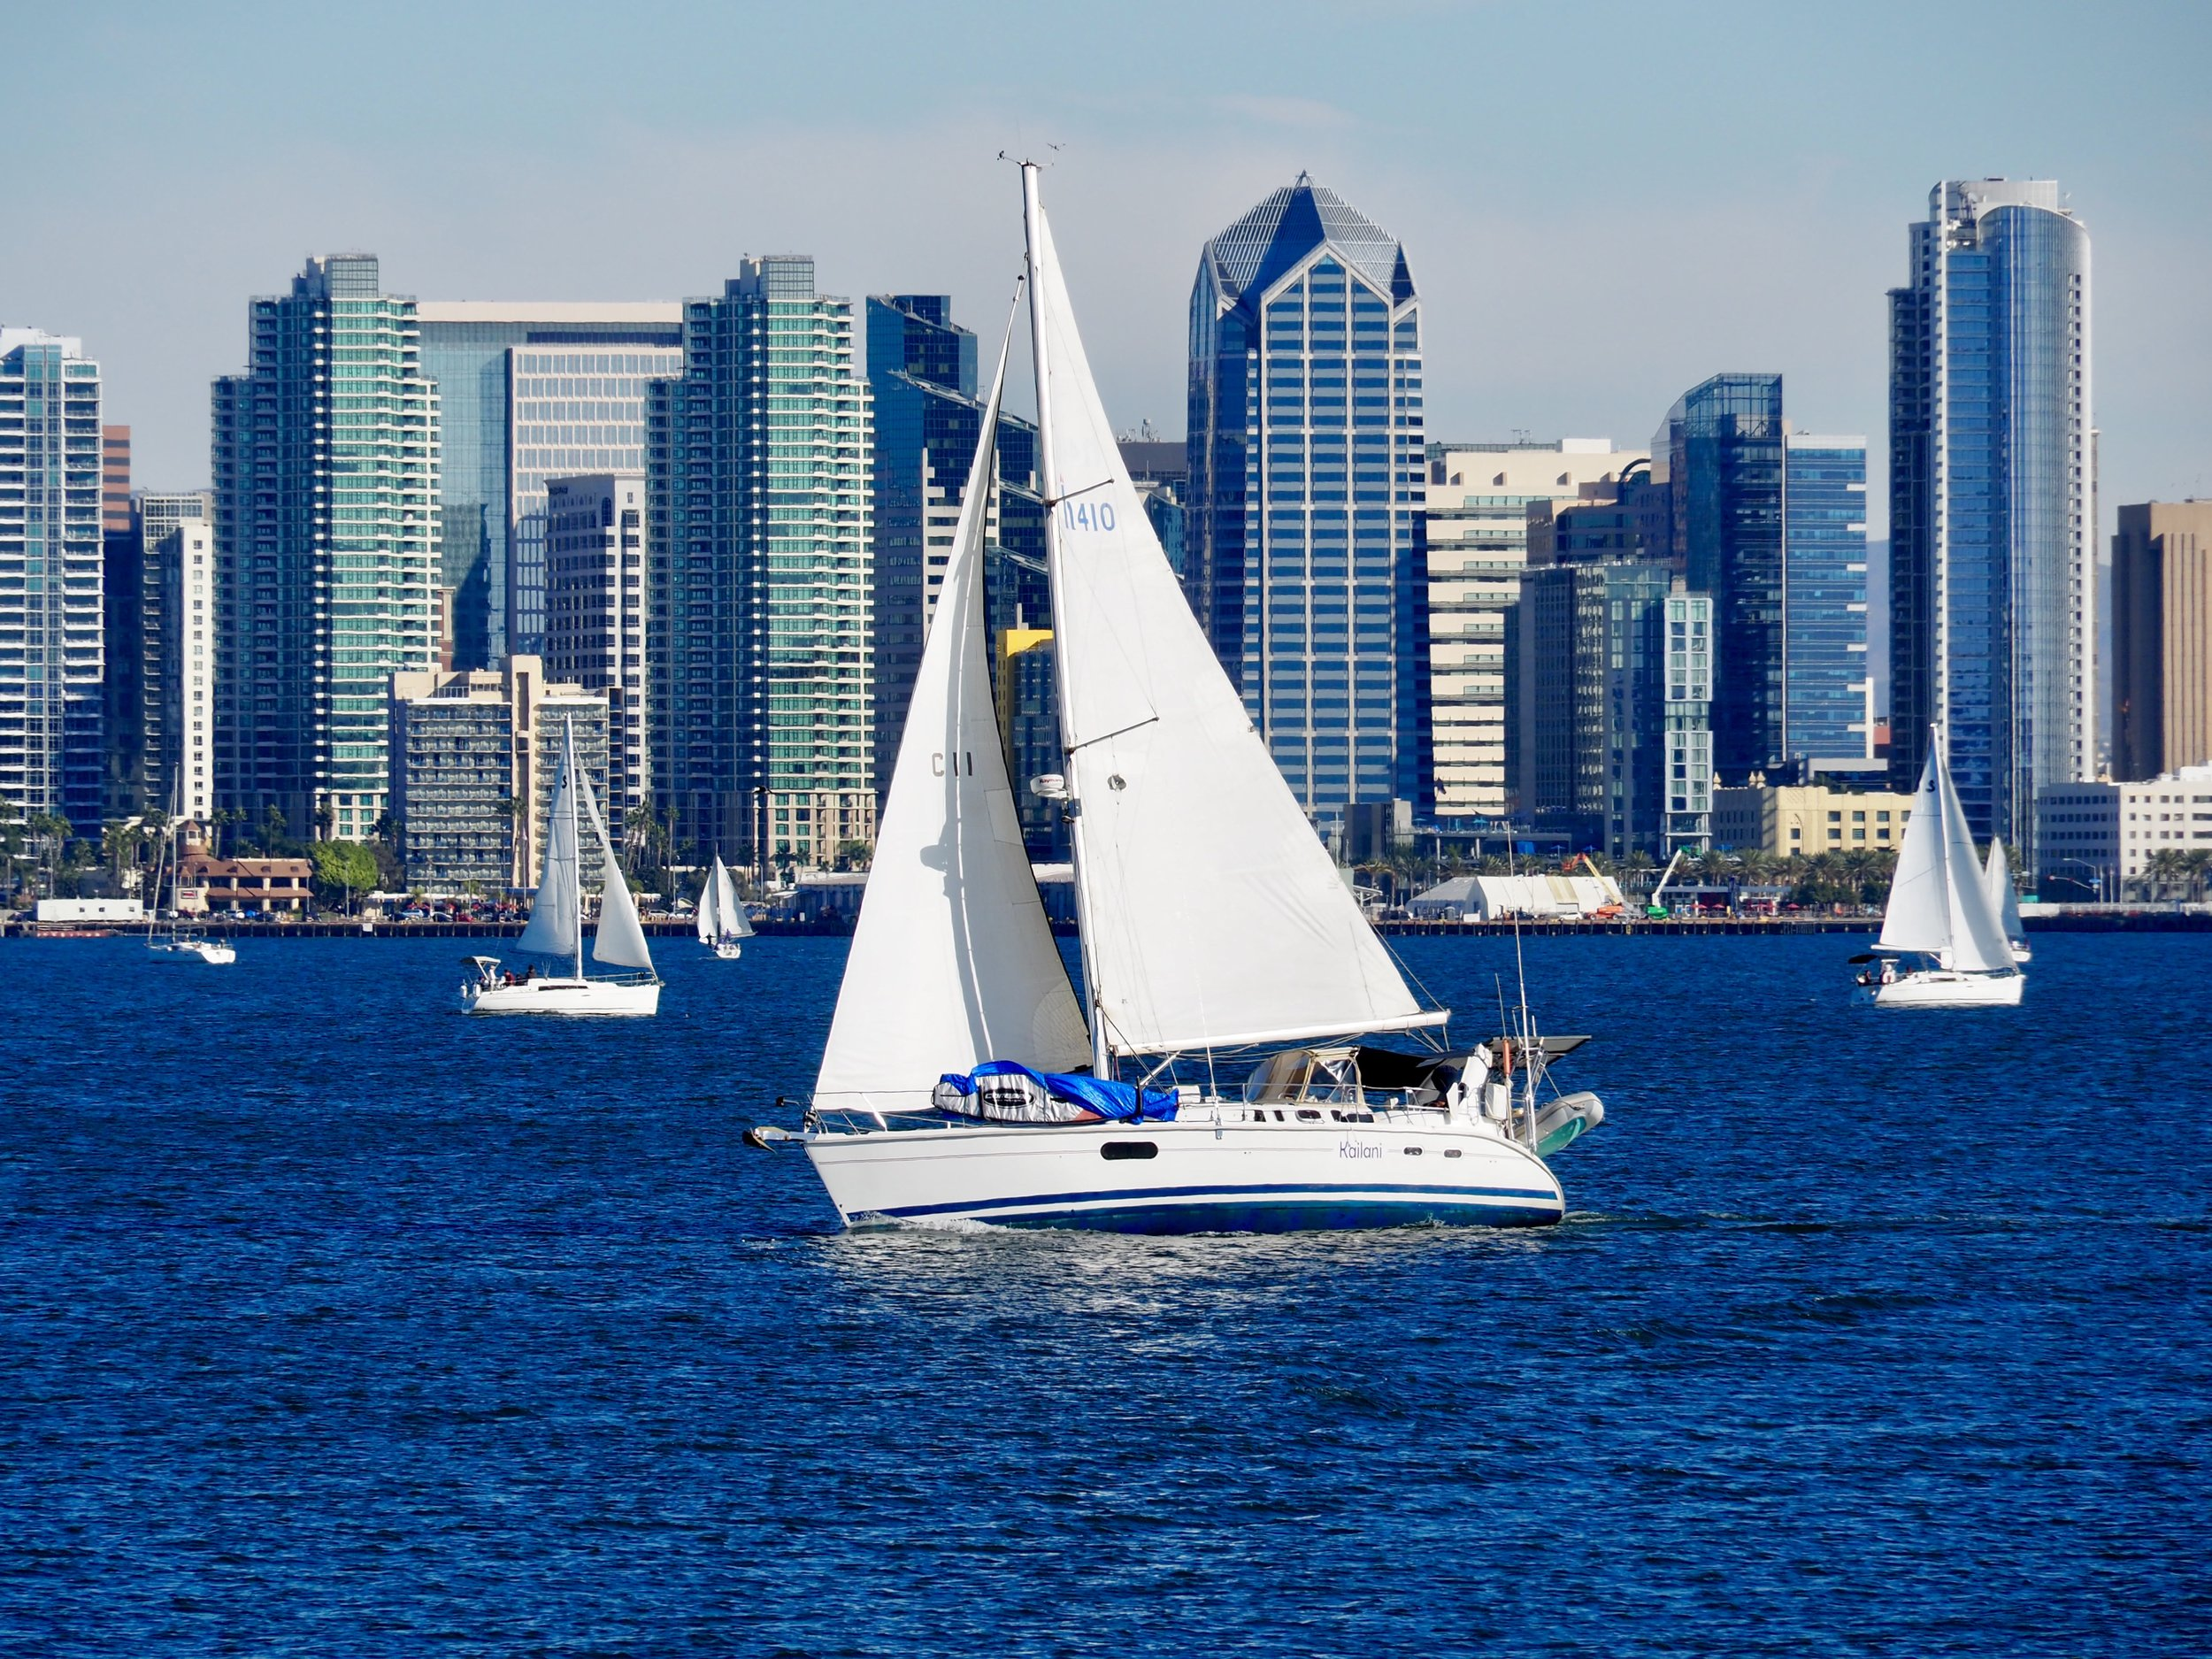 It's 1pm on a random Wednesday in November. If you're in San Diego harbor, it's time to race your sailboat, natch.